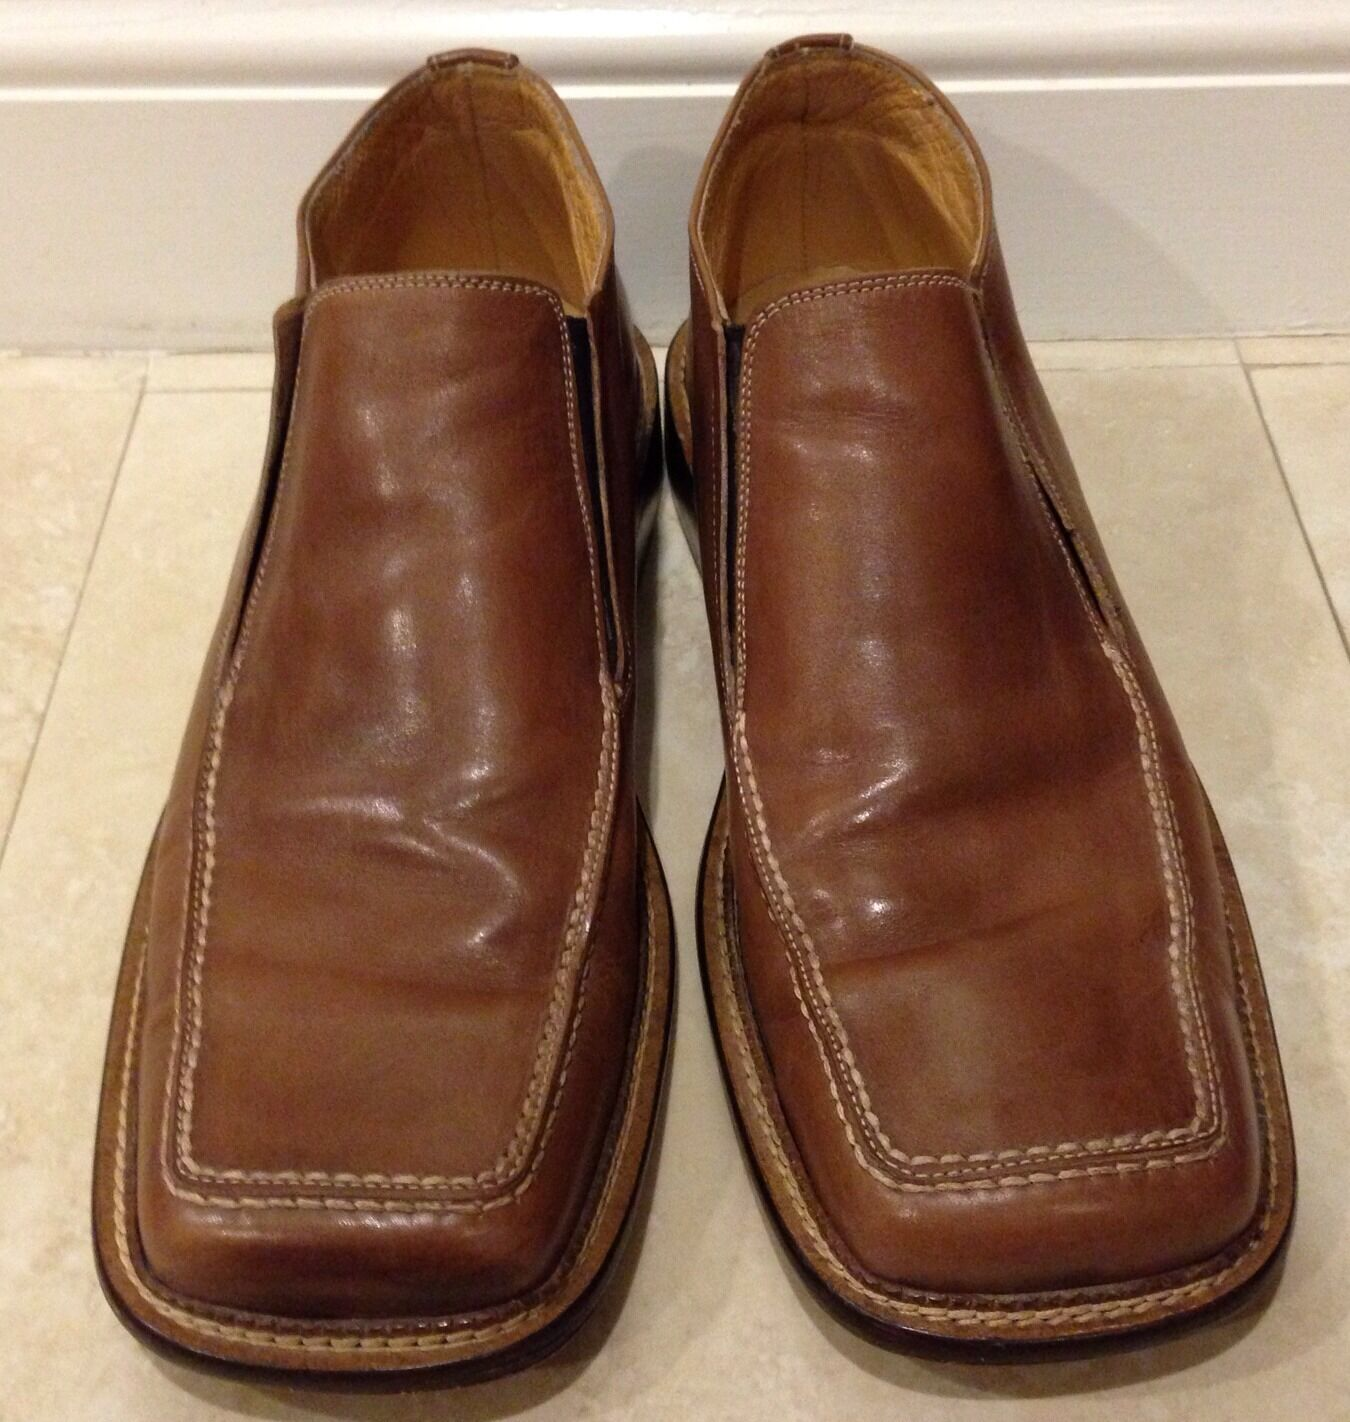 Maurizio Men's Brown Leather Loafers 45 12